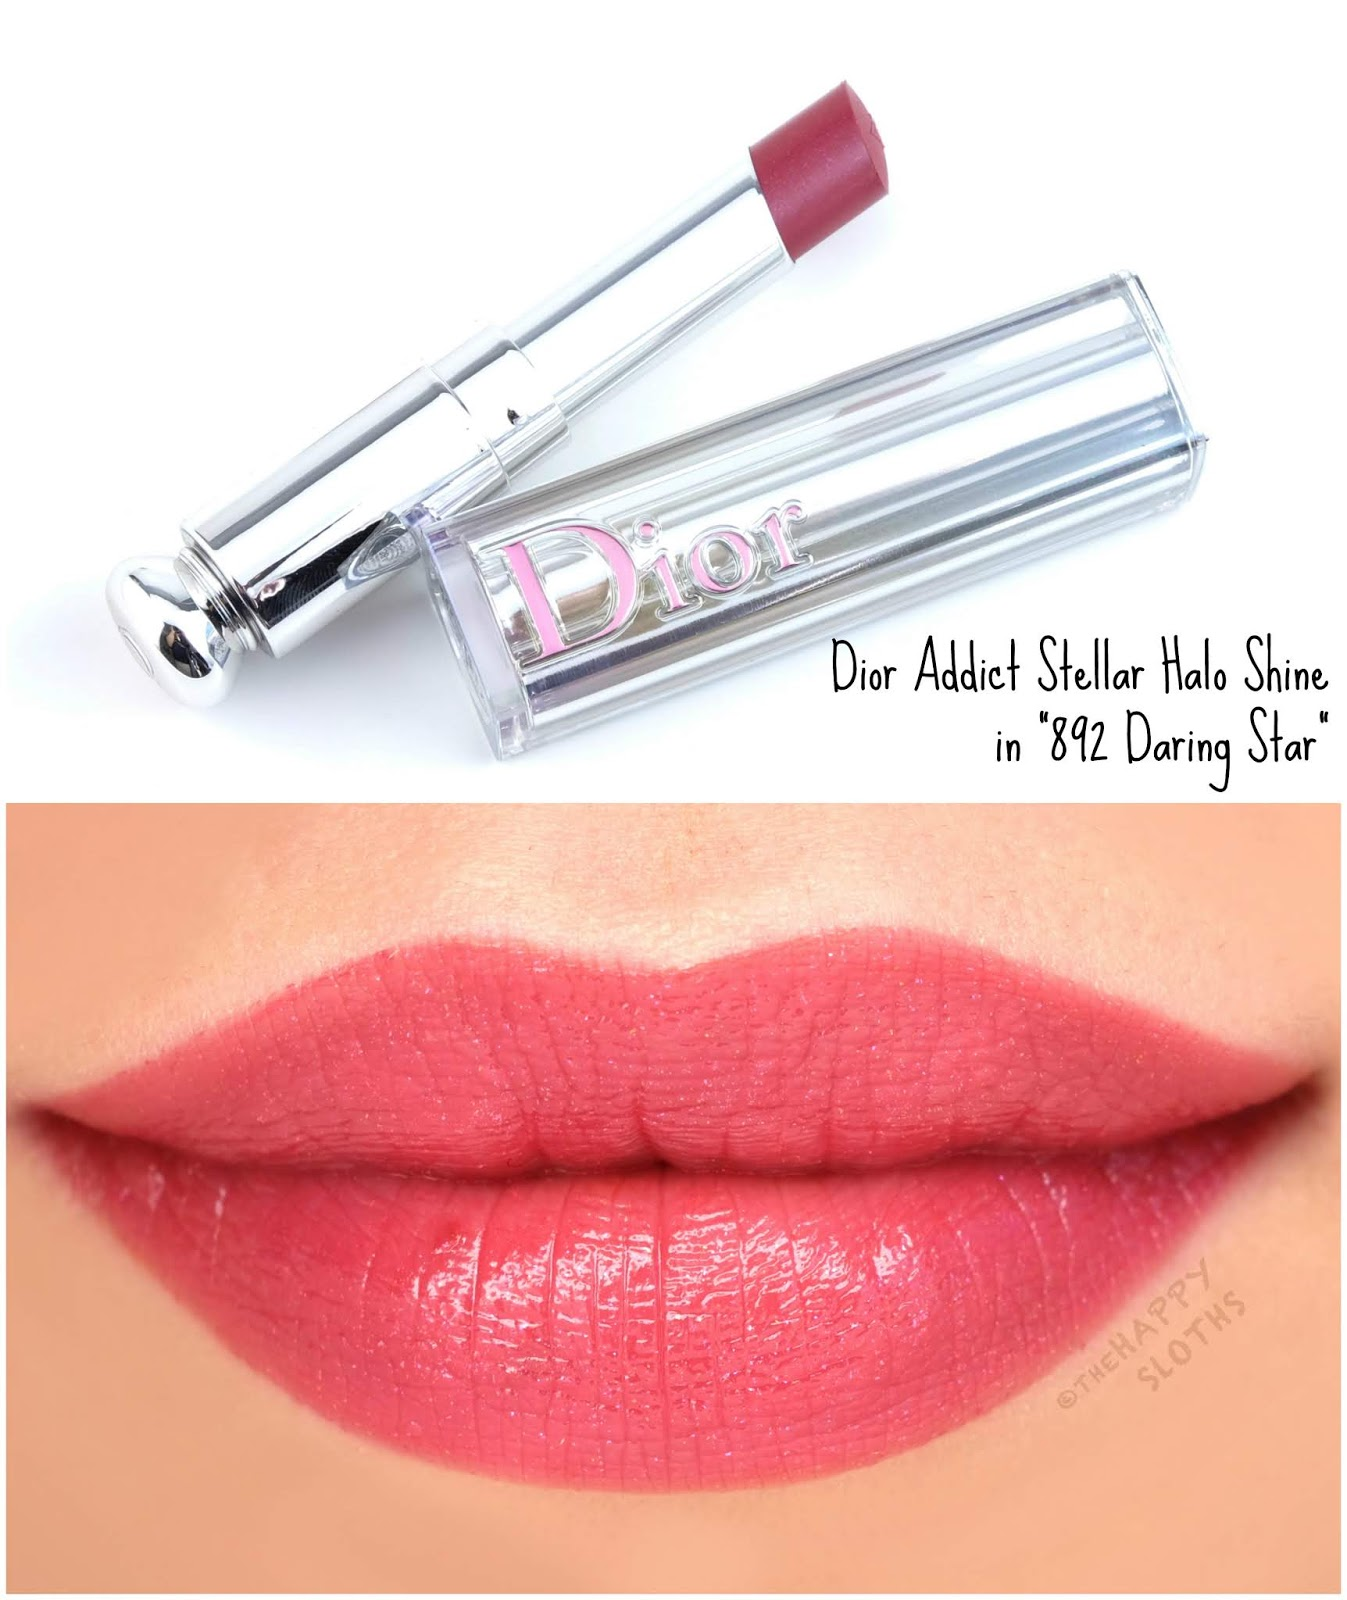 "Dior | Dior Addict Stellar Halo Shine Lipstick in ""892 Daring Star"": Review and Swatches"